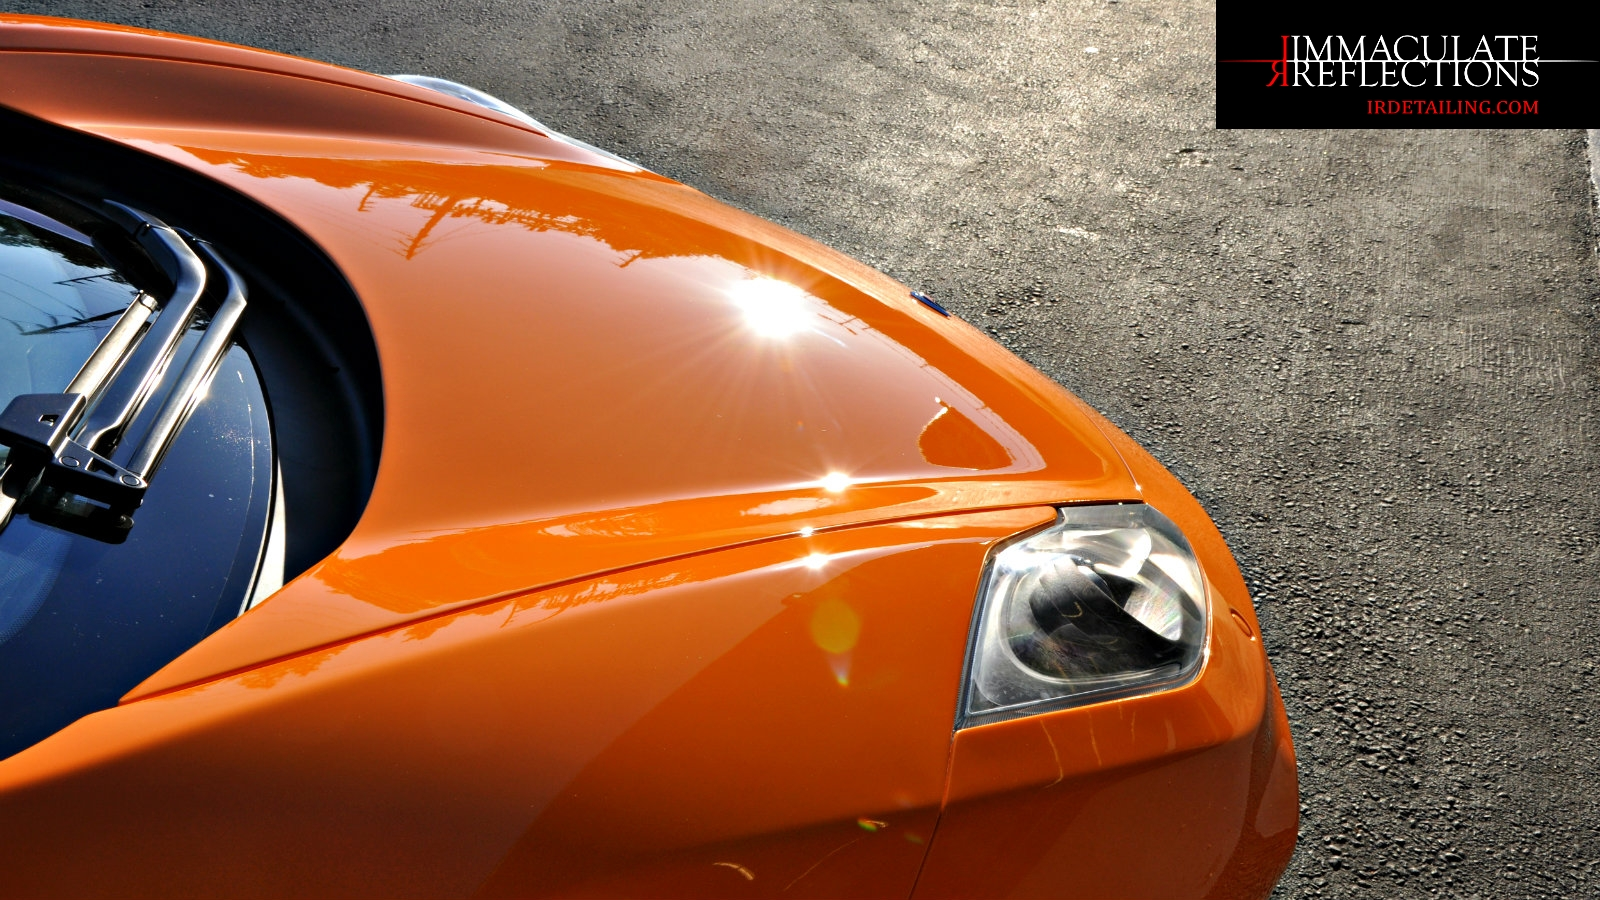 Magnificent sun shots from this McLaren MP4-12C thanks to IRDetailing.com paint correction detail services.